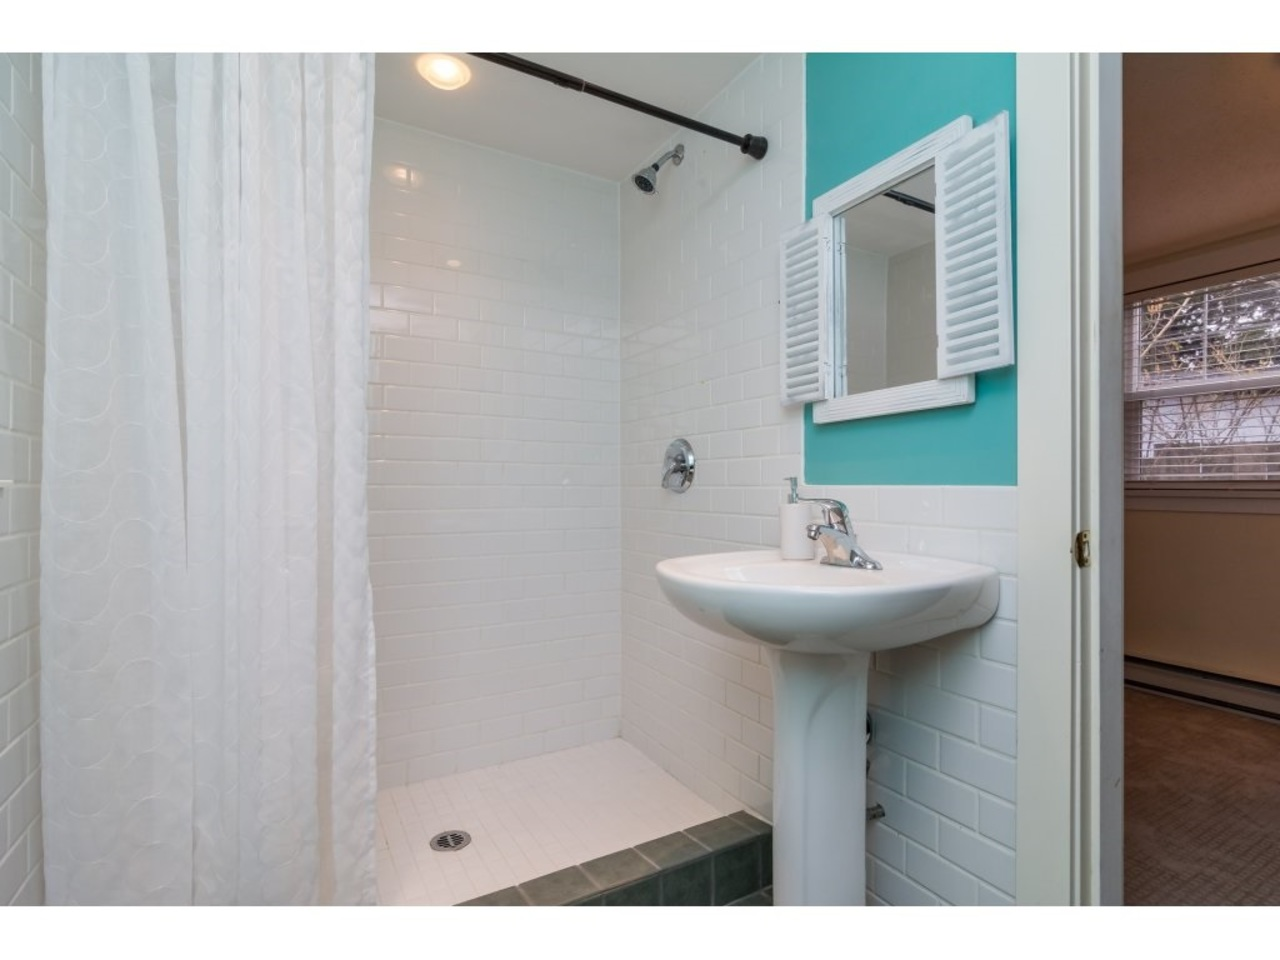 2nd Bathroom -Listed by Solon REM, Top Langley & Fraser Valley Realtor  at 7498 116a, Scottsdale, N. Delta